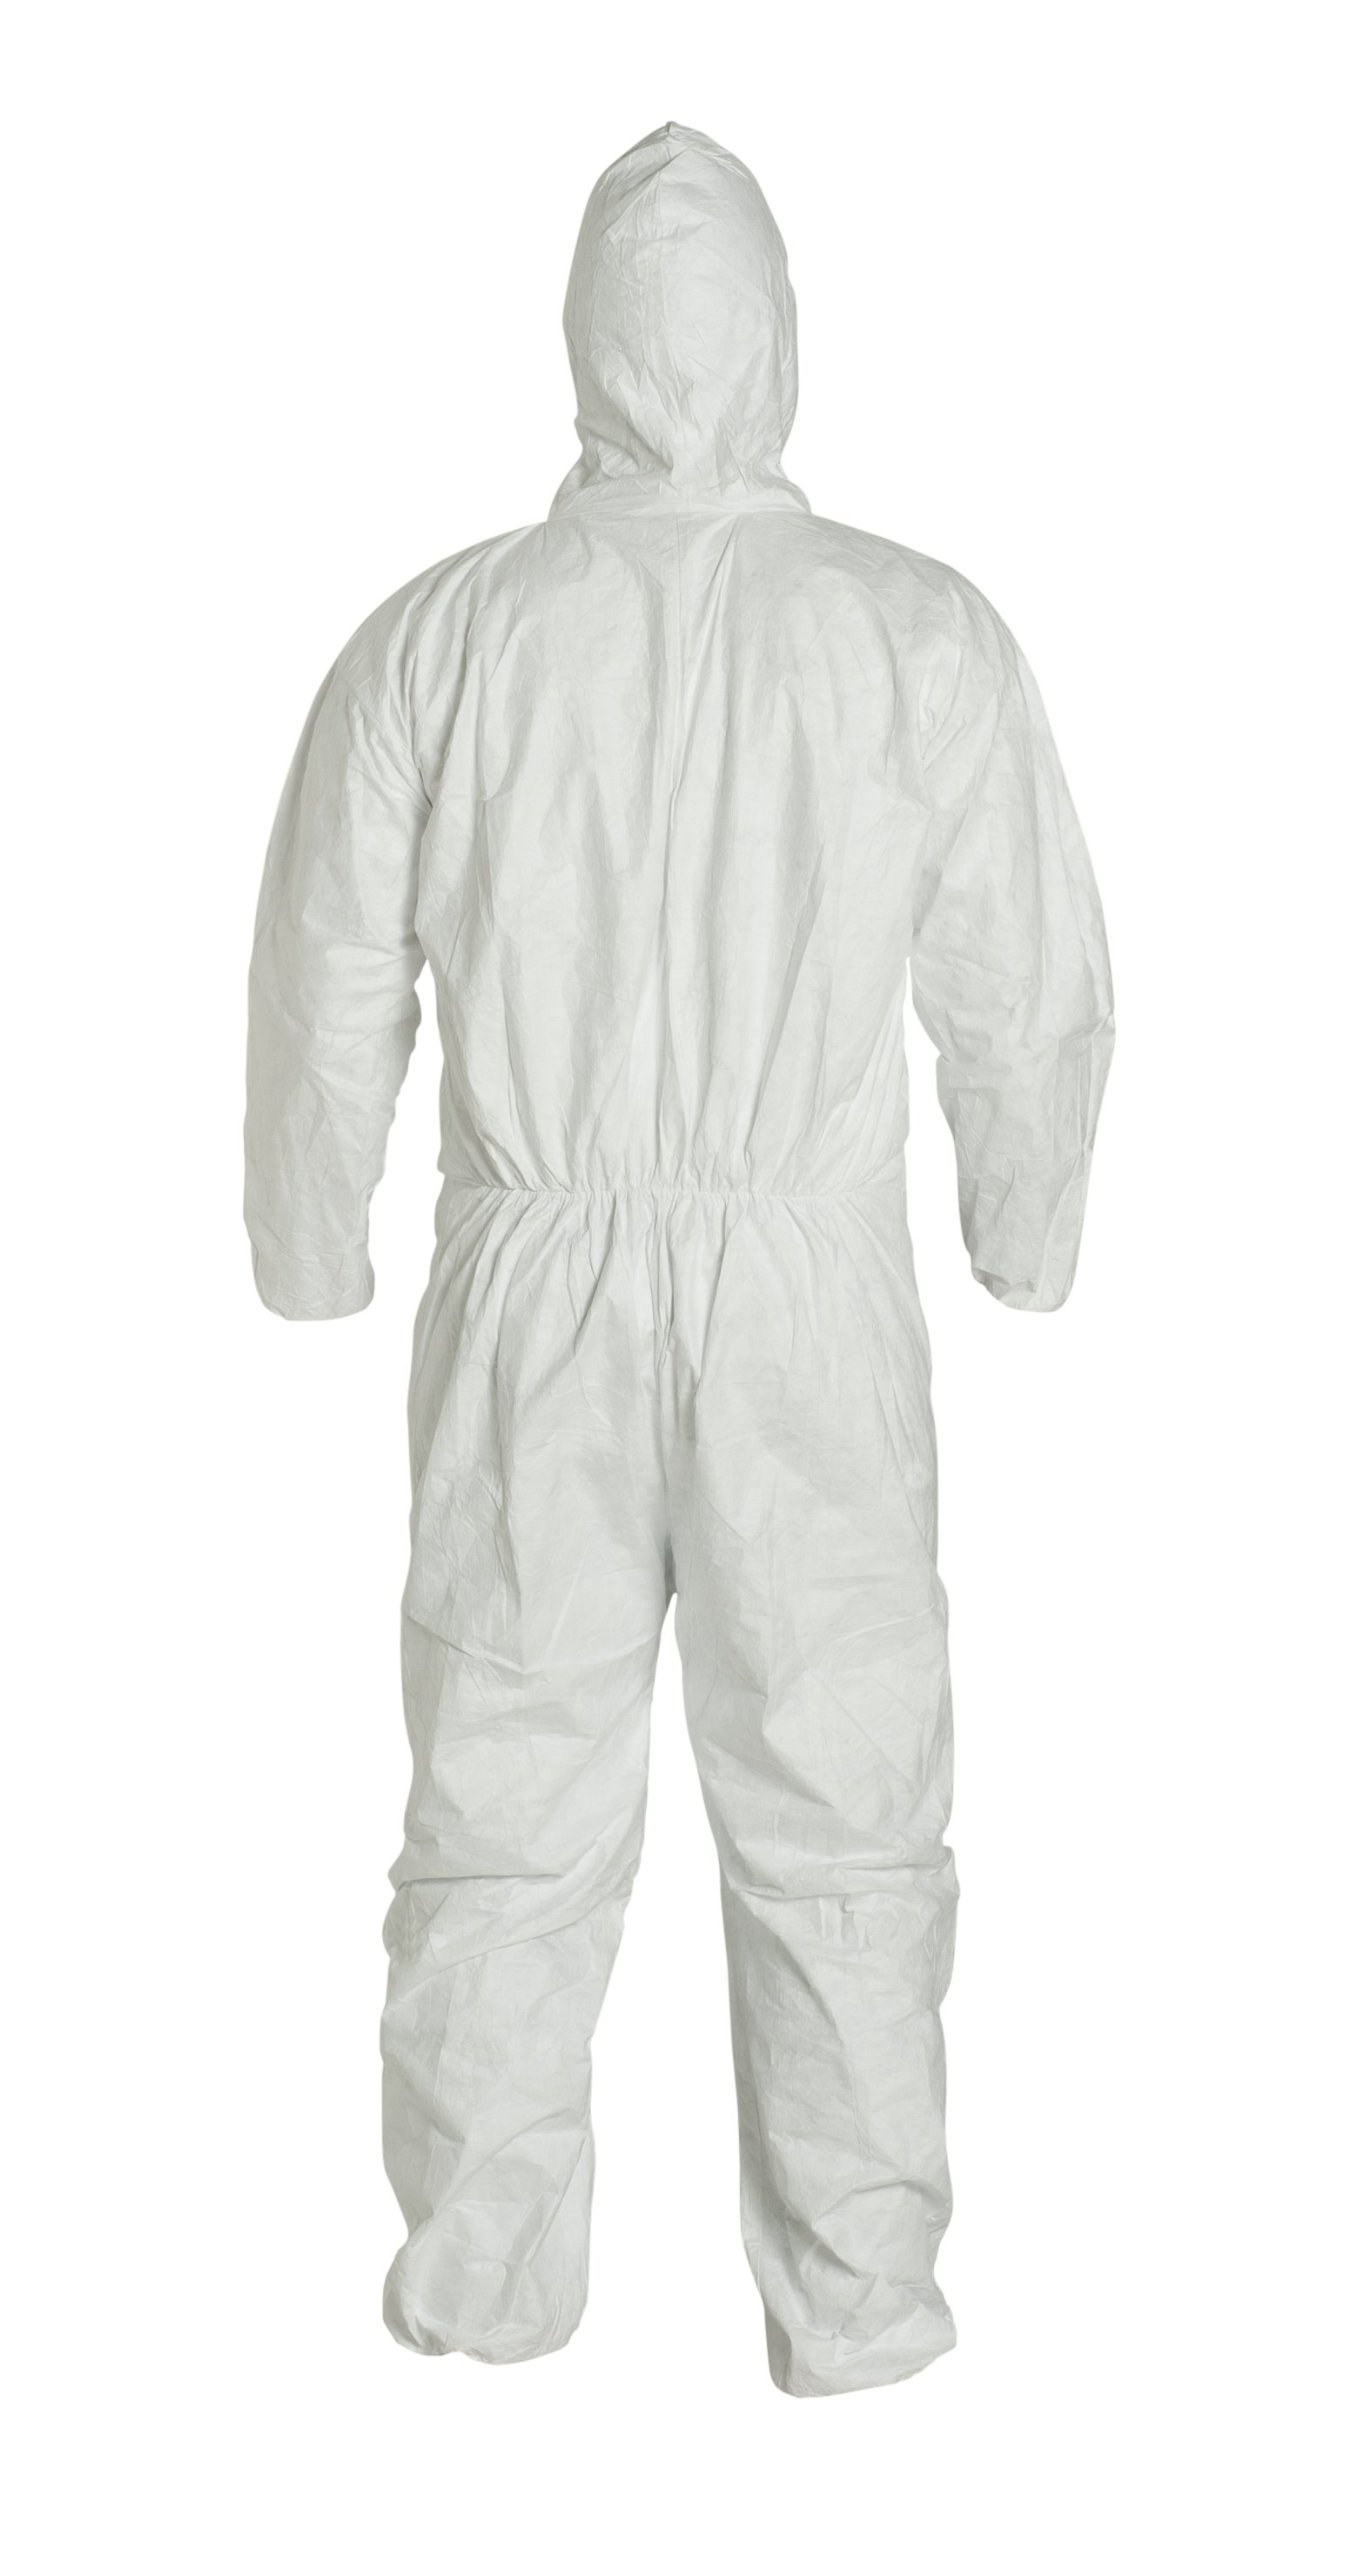 DuPont Tyvek 400 TY127S  Protective Coverall with Respirator-Fit Hood, Disposable, Elastic Cuff by DuPont (Image #2)